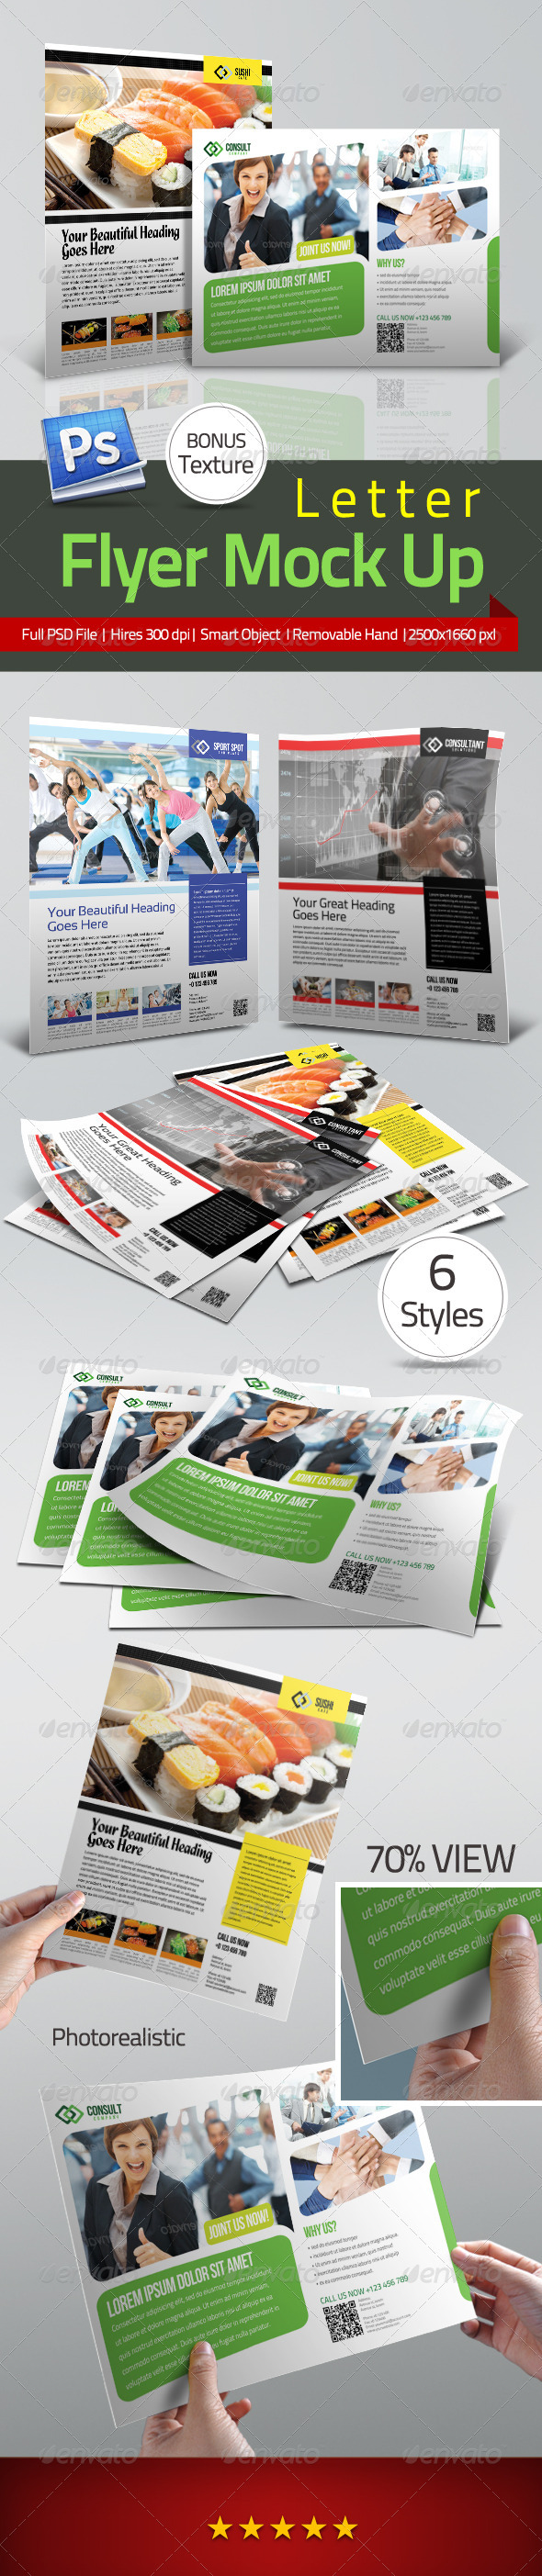 Professional Flyer Letter Mock Up - Flyers Print